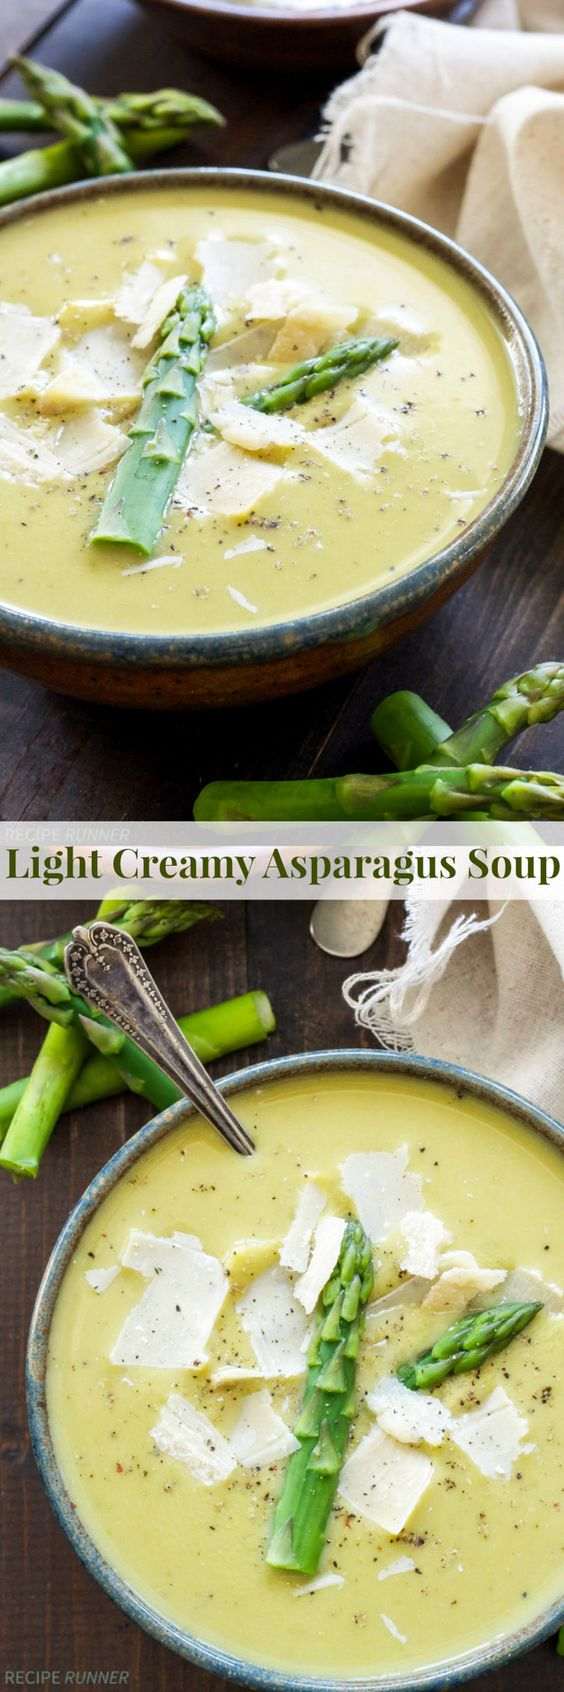 Light Creamy Asparagus Soup | A creamy, delicious and healthy soup for ...